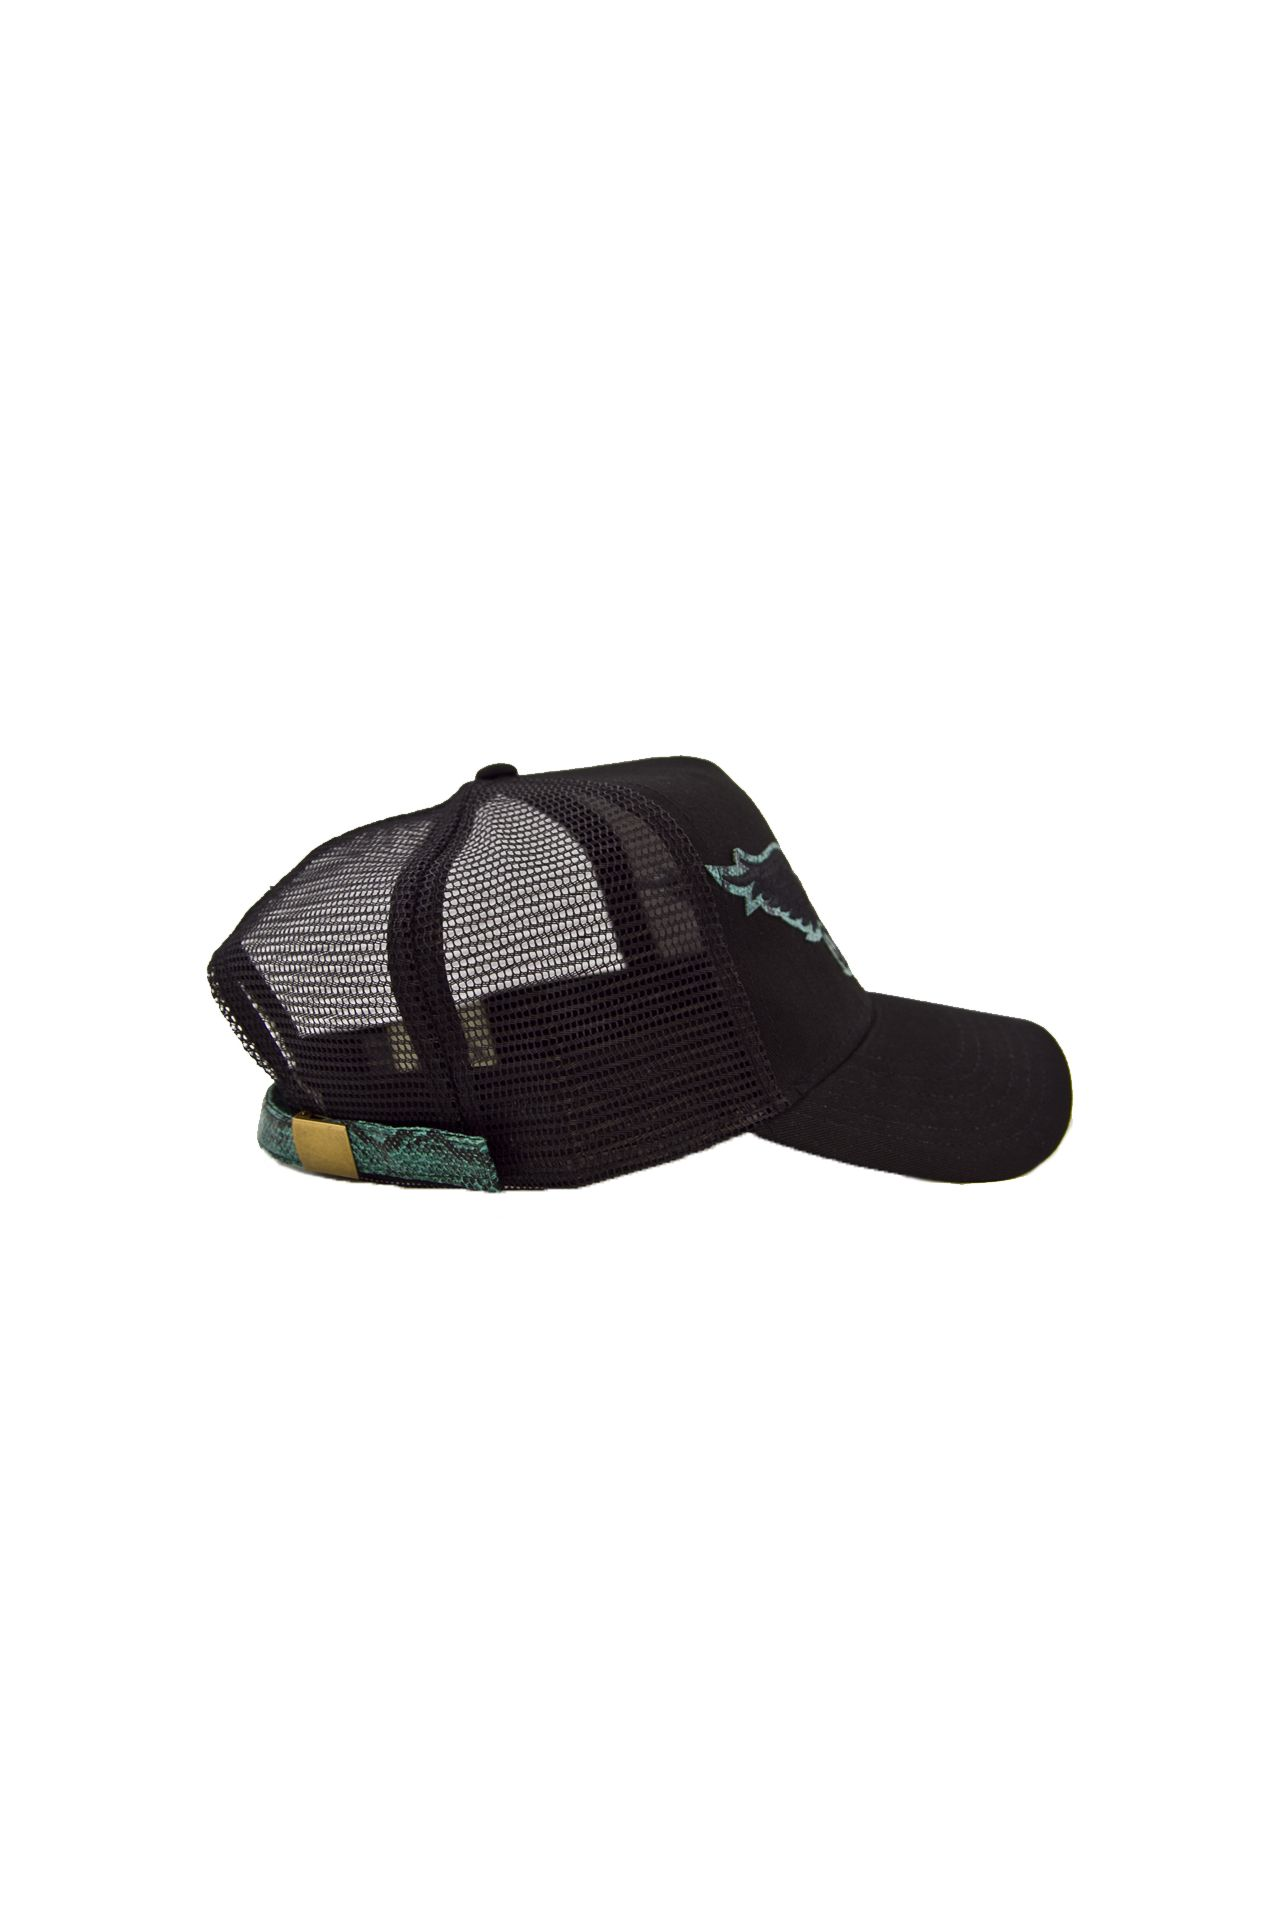 BLACK TWILL CAP WITH GREEN UNDER VISOR